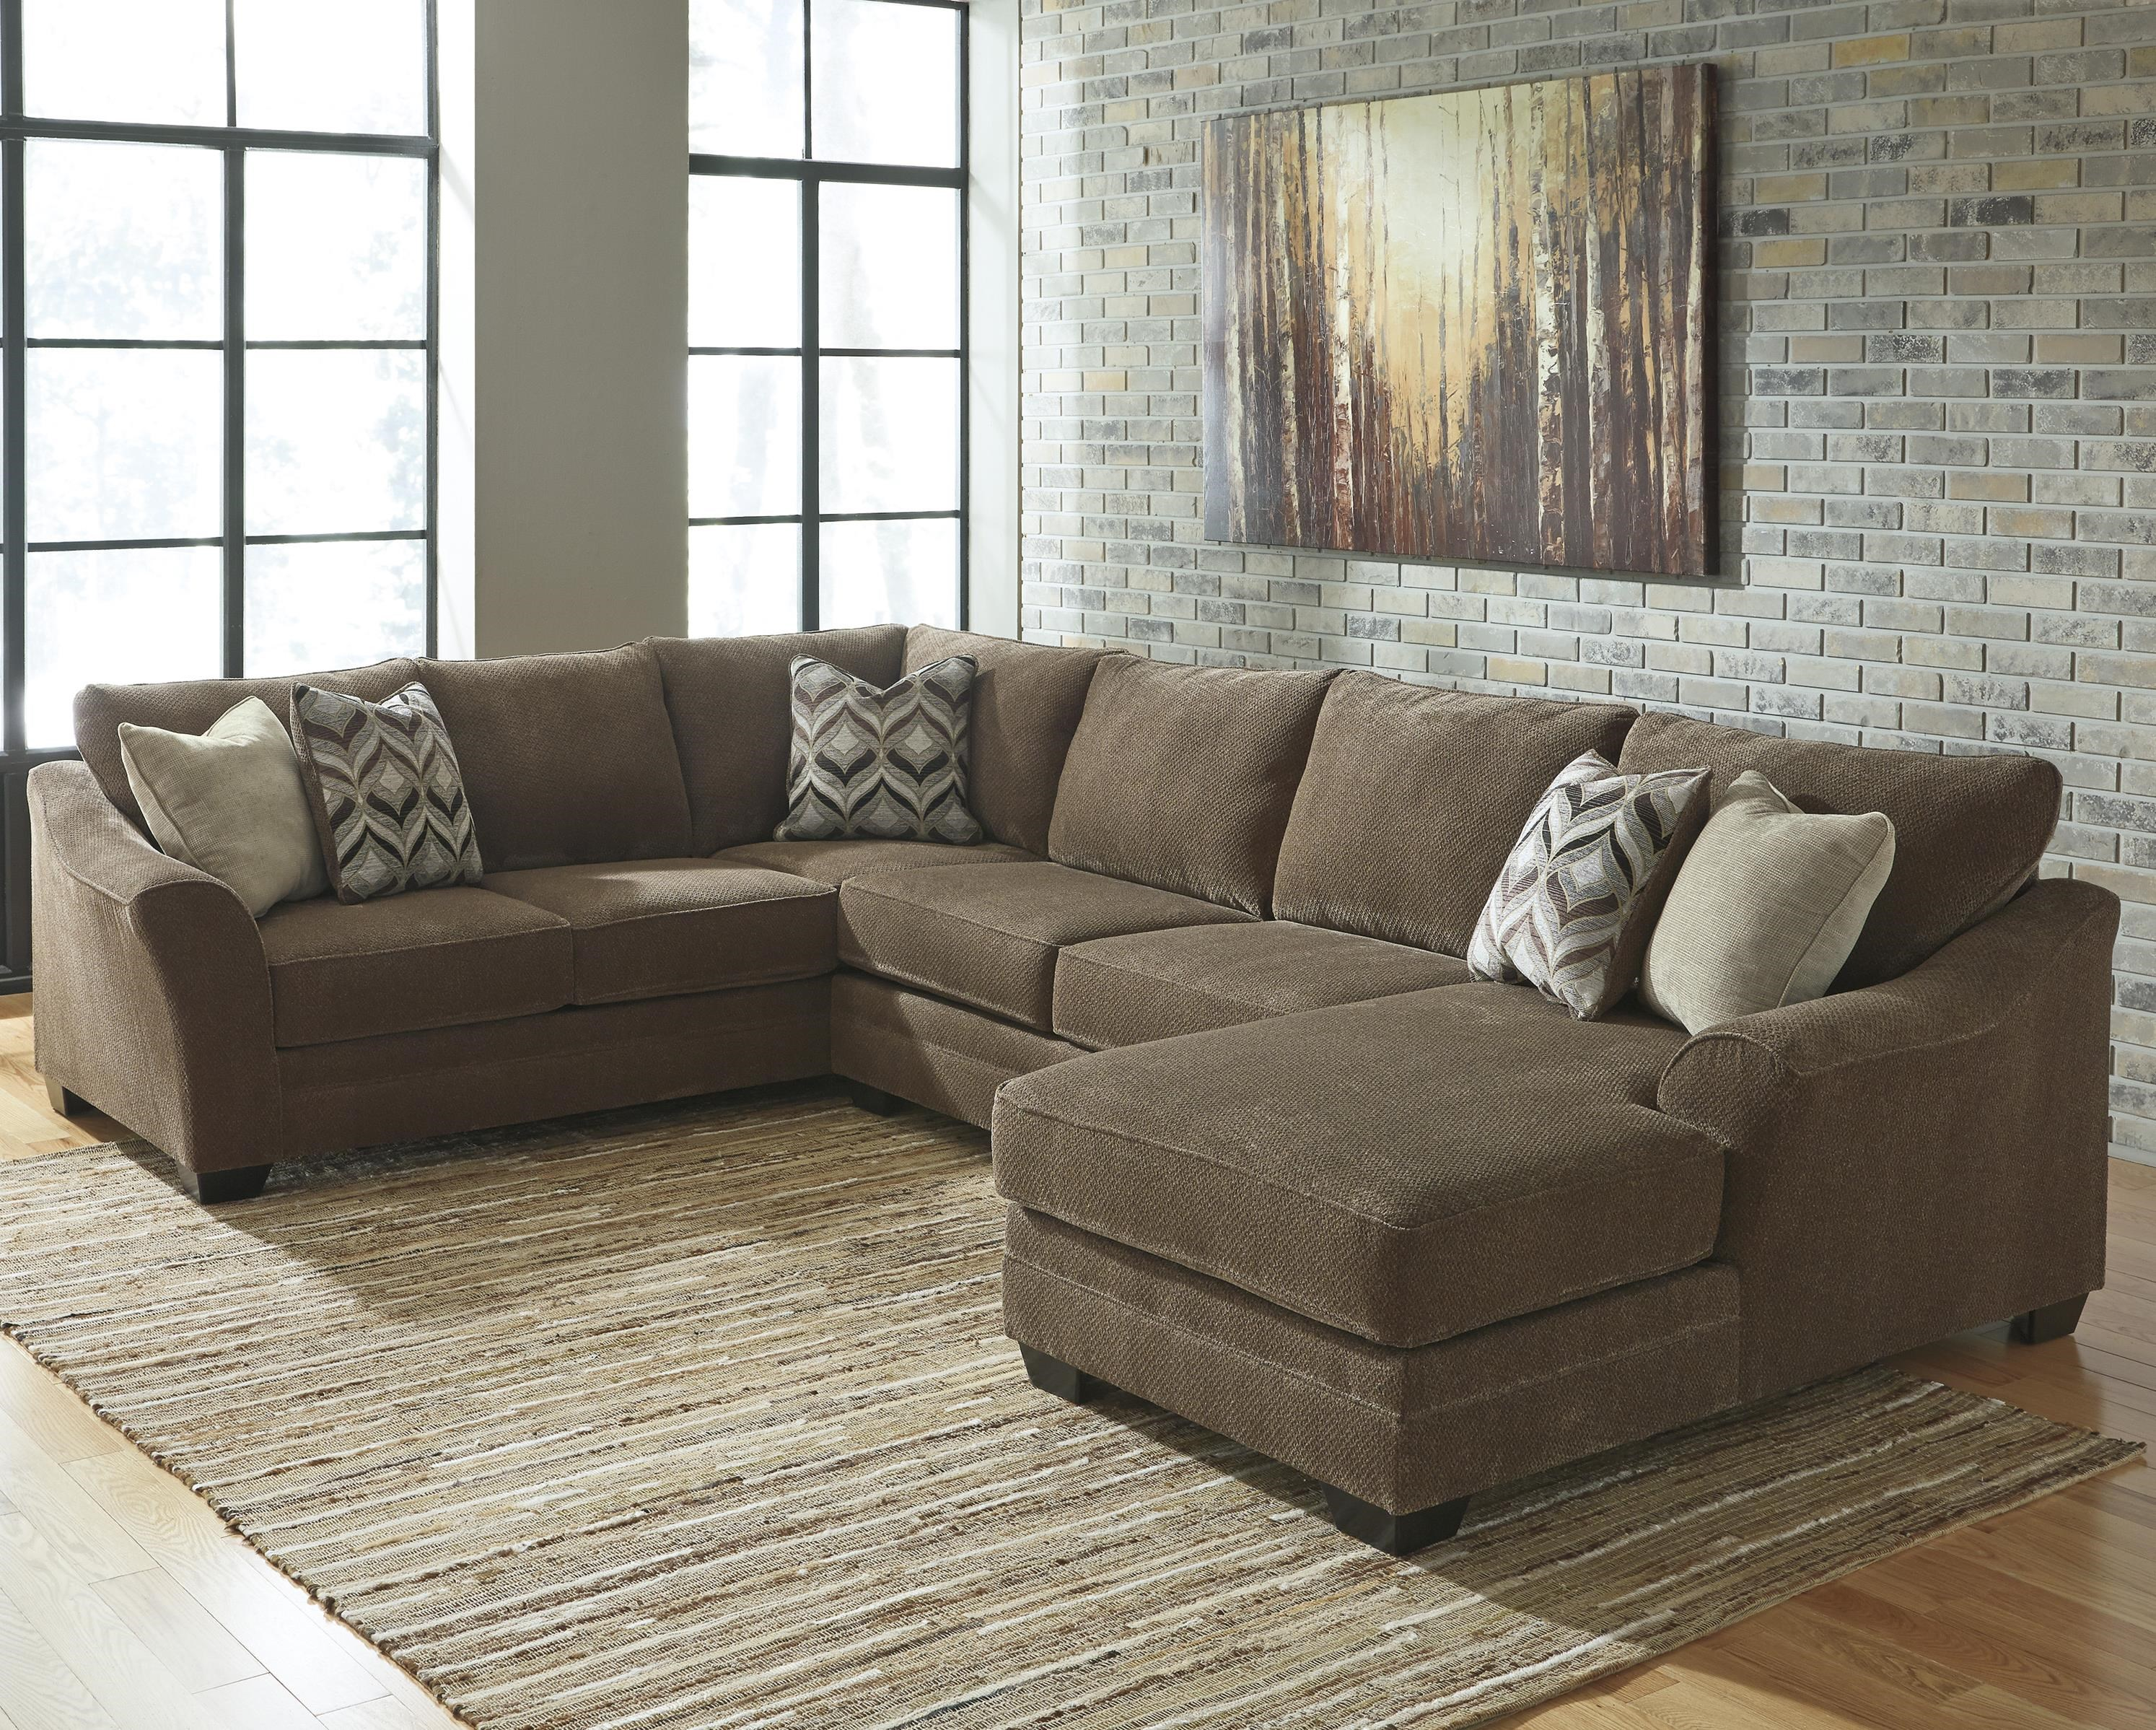 Beautiful Benchcraft Justyna Contemporary 3 Piece Sectional With Right Chaise